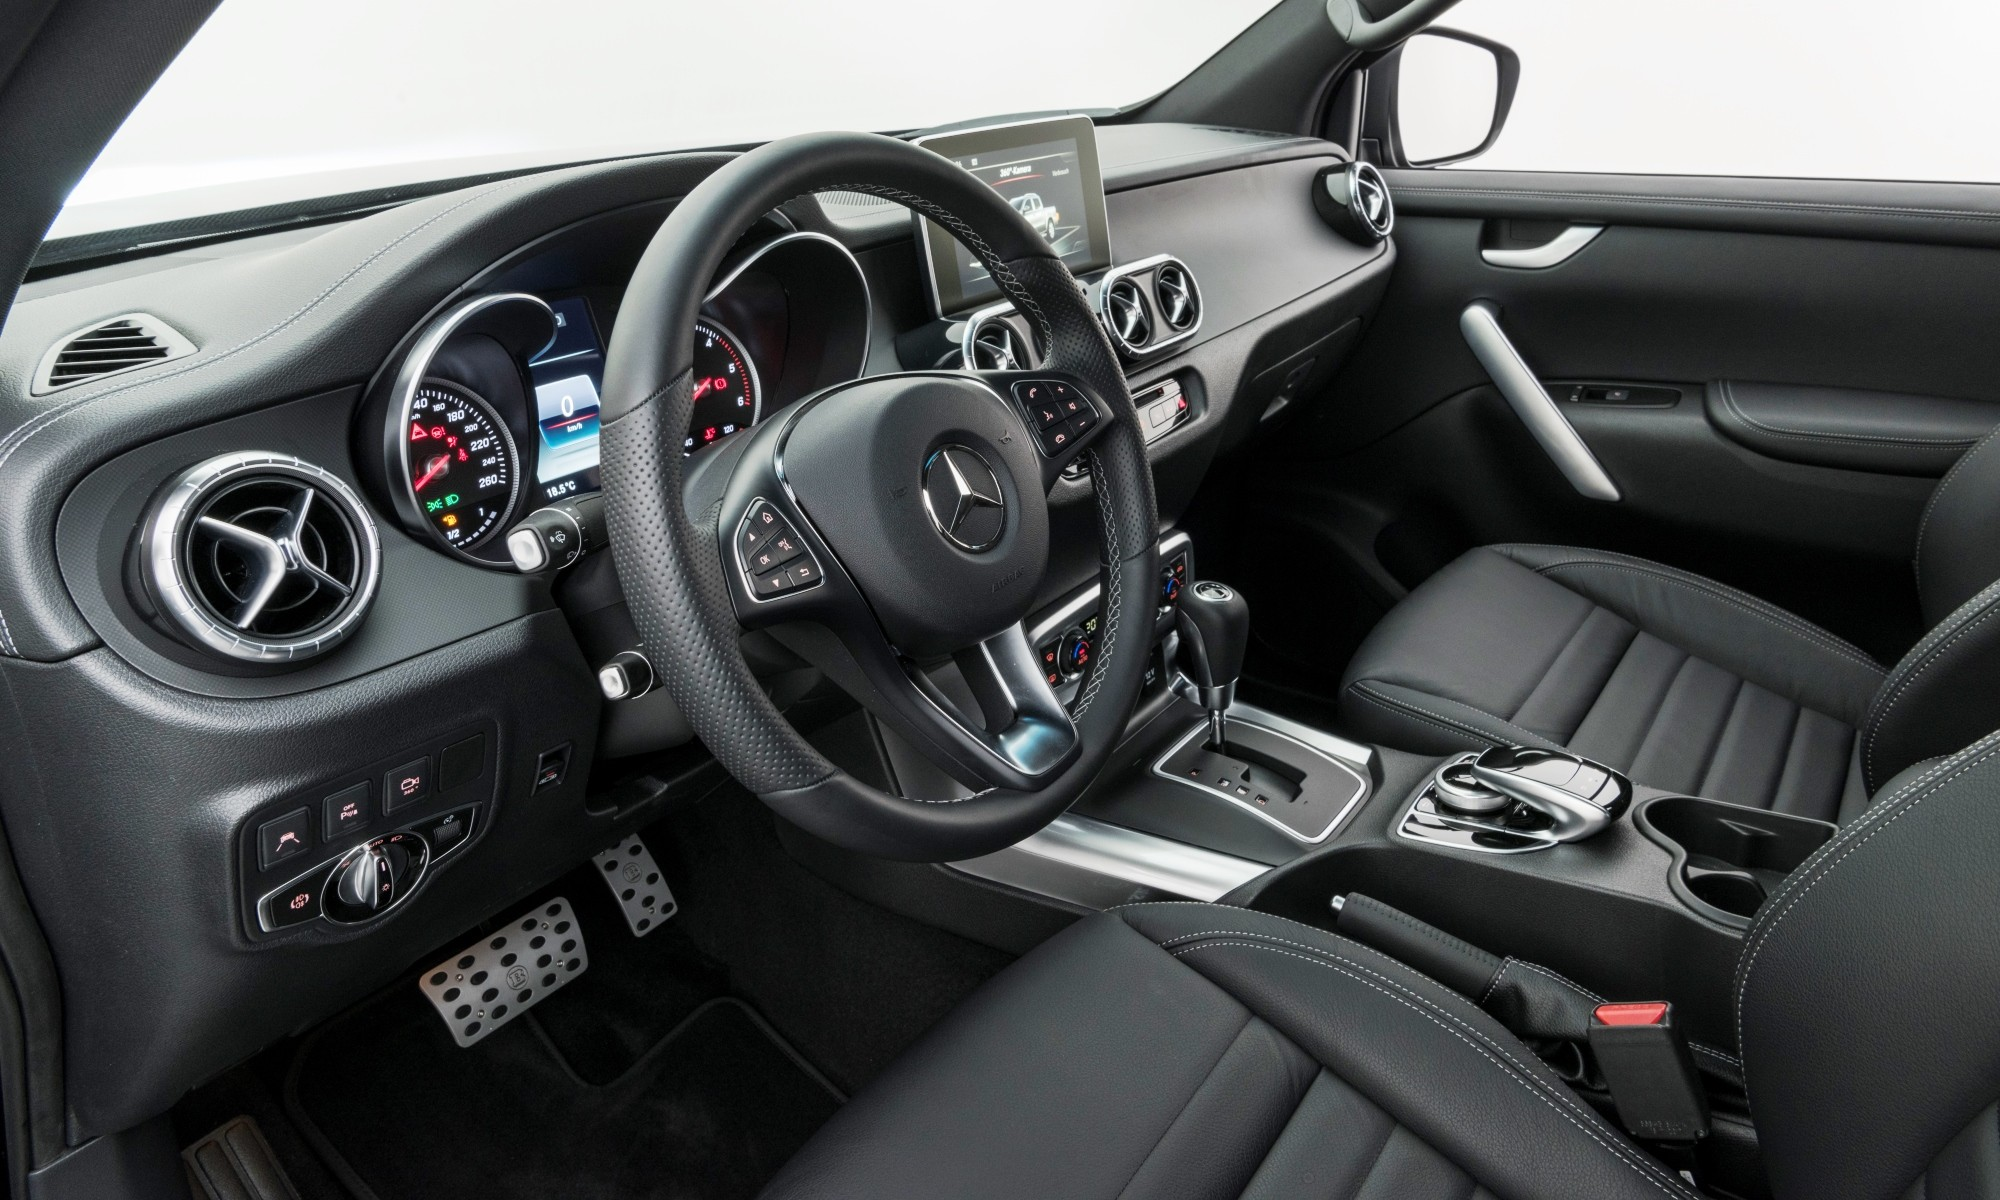 The interior receives just a few Brabus touches